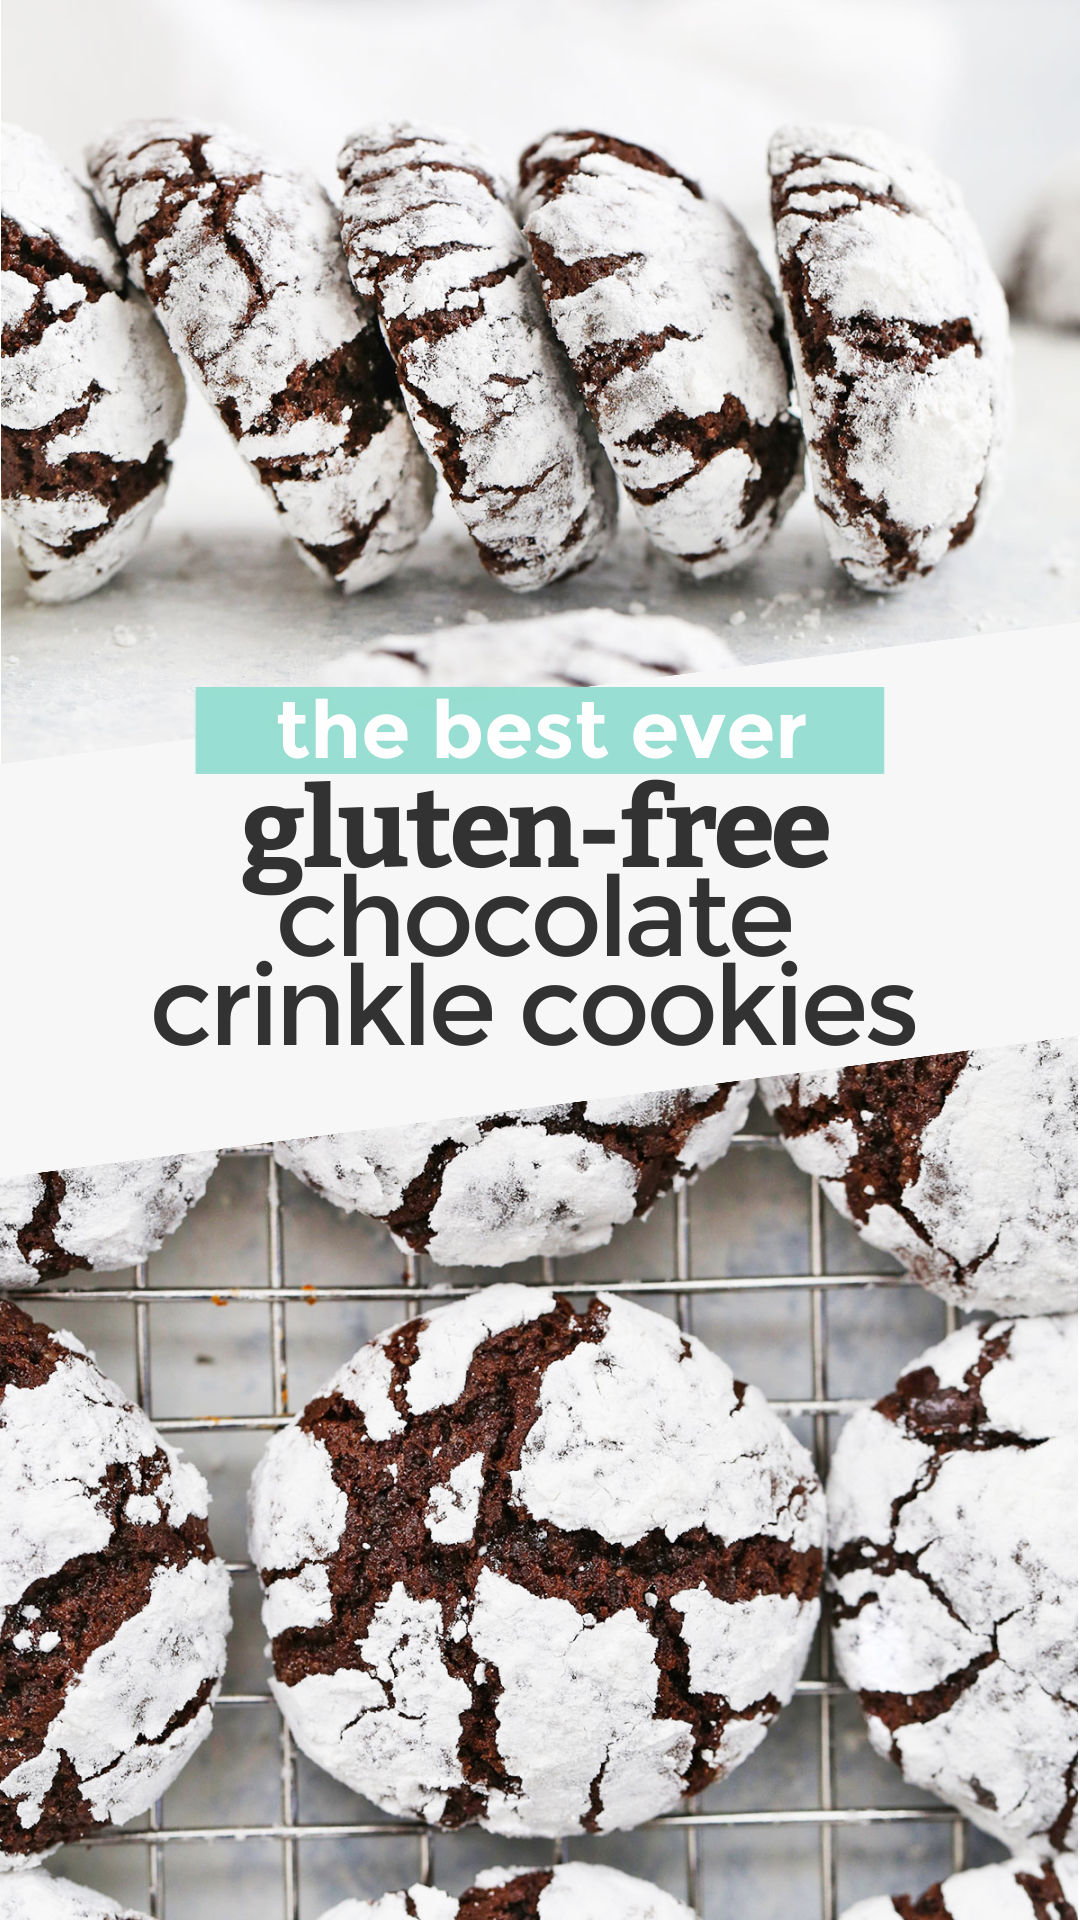 Gluten-Free Chocolate Crinkle Cookies - These gorgeous gluten-free crinkle cookies are ultra-fudgy and absolutely delicious! Perfect for the holidays or your next chocolate craving. (Gluten-Free & Dairy Free) // Crinkle Cookies Recipe // Chocolate Crinkle Cookies Recipe // Gluten Free Christmas Cookies // #cookies #chocolate #crinklecookies #christmascookies #chocolatecookies #glutenfree #dairyfree